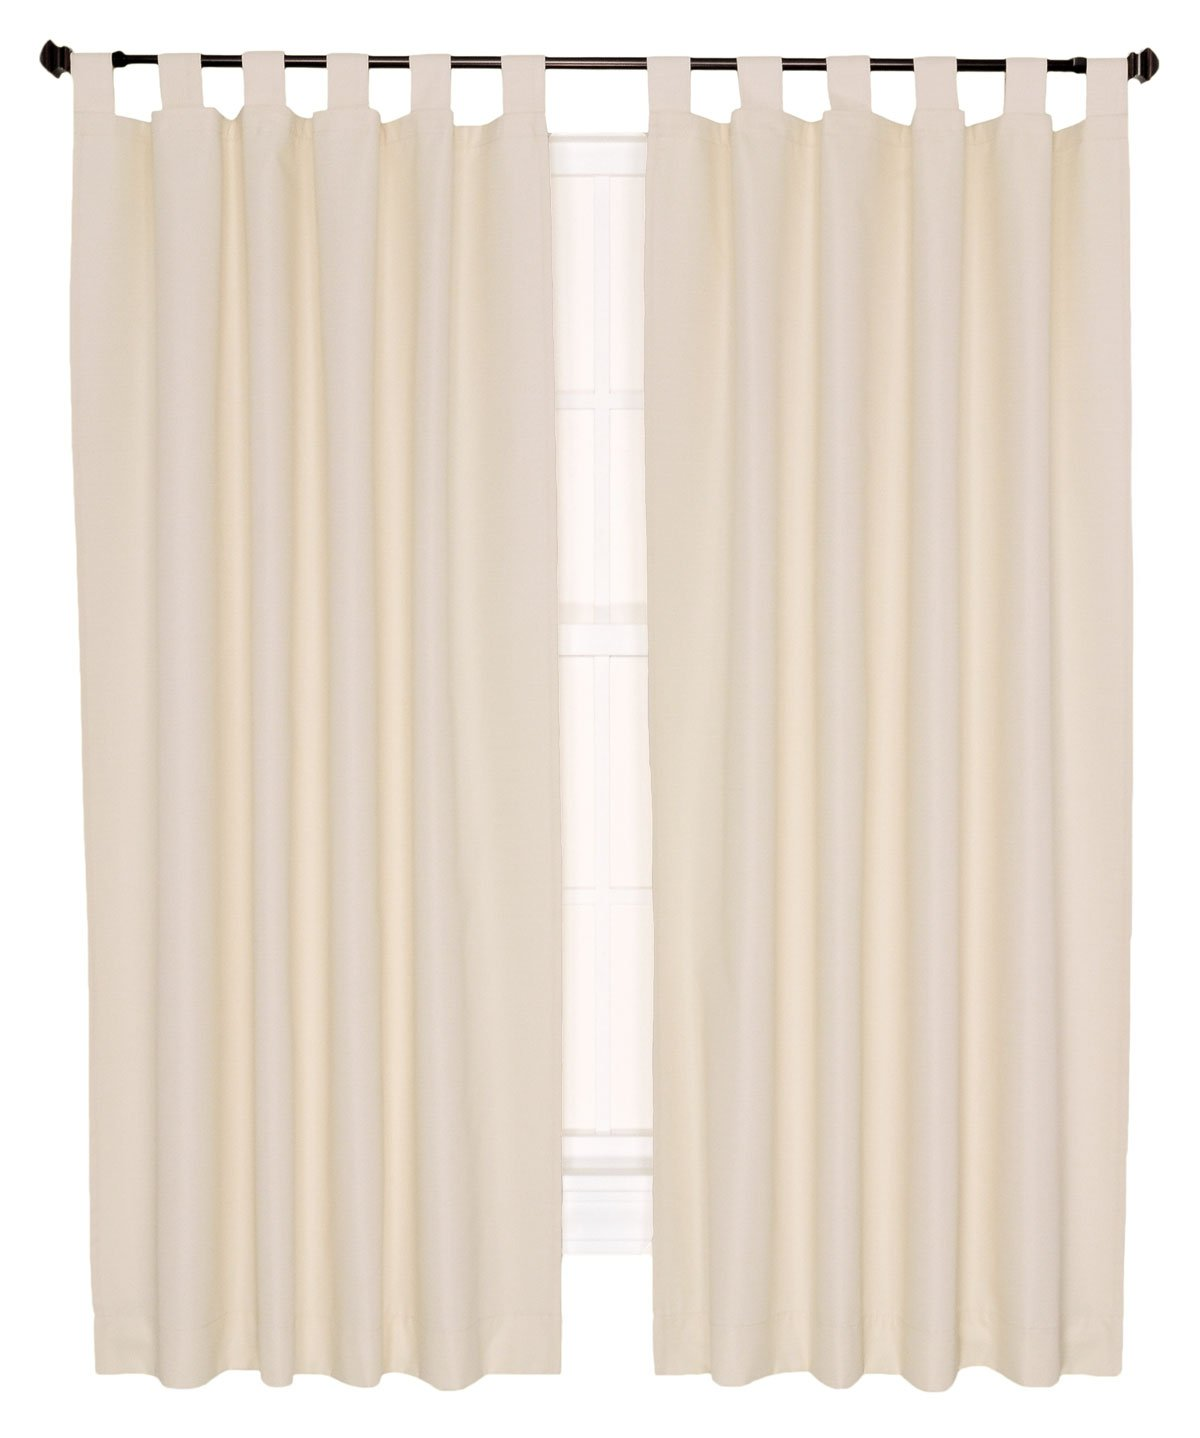 Couldn t find a picture of the curtains anywhere online this is - Amazon Com Ellis Curtain Crosby Thermal Insulated 160 By 84 Inch Double Width Tab Top Foamback Curtains Bordeaux Home Kitchen